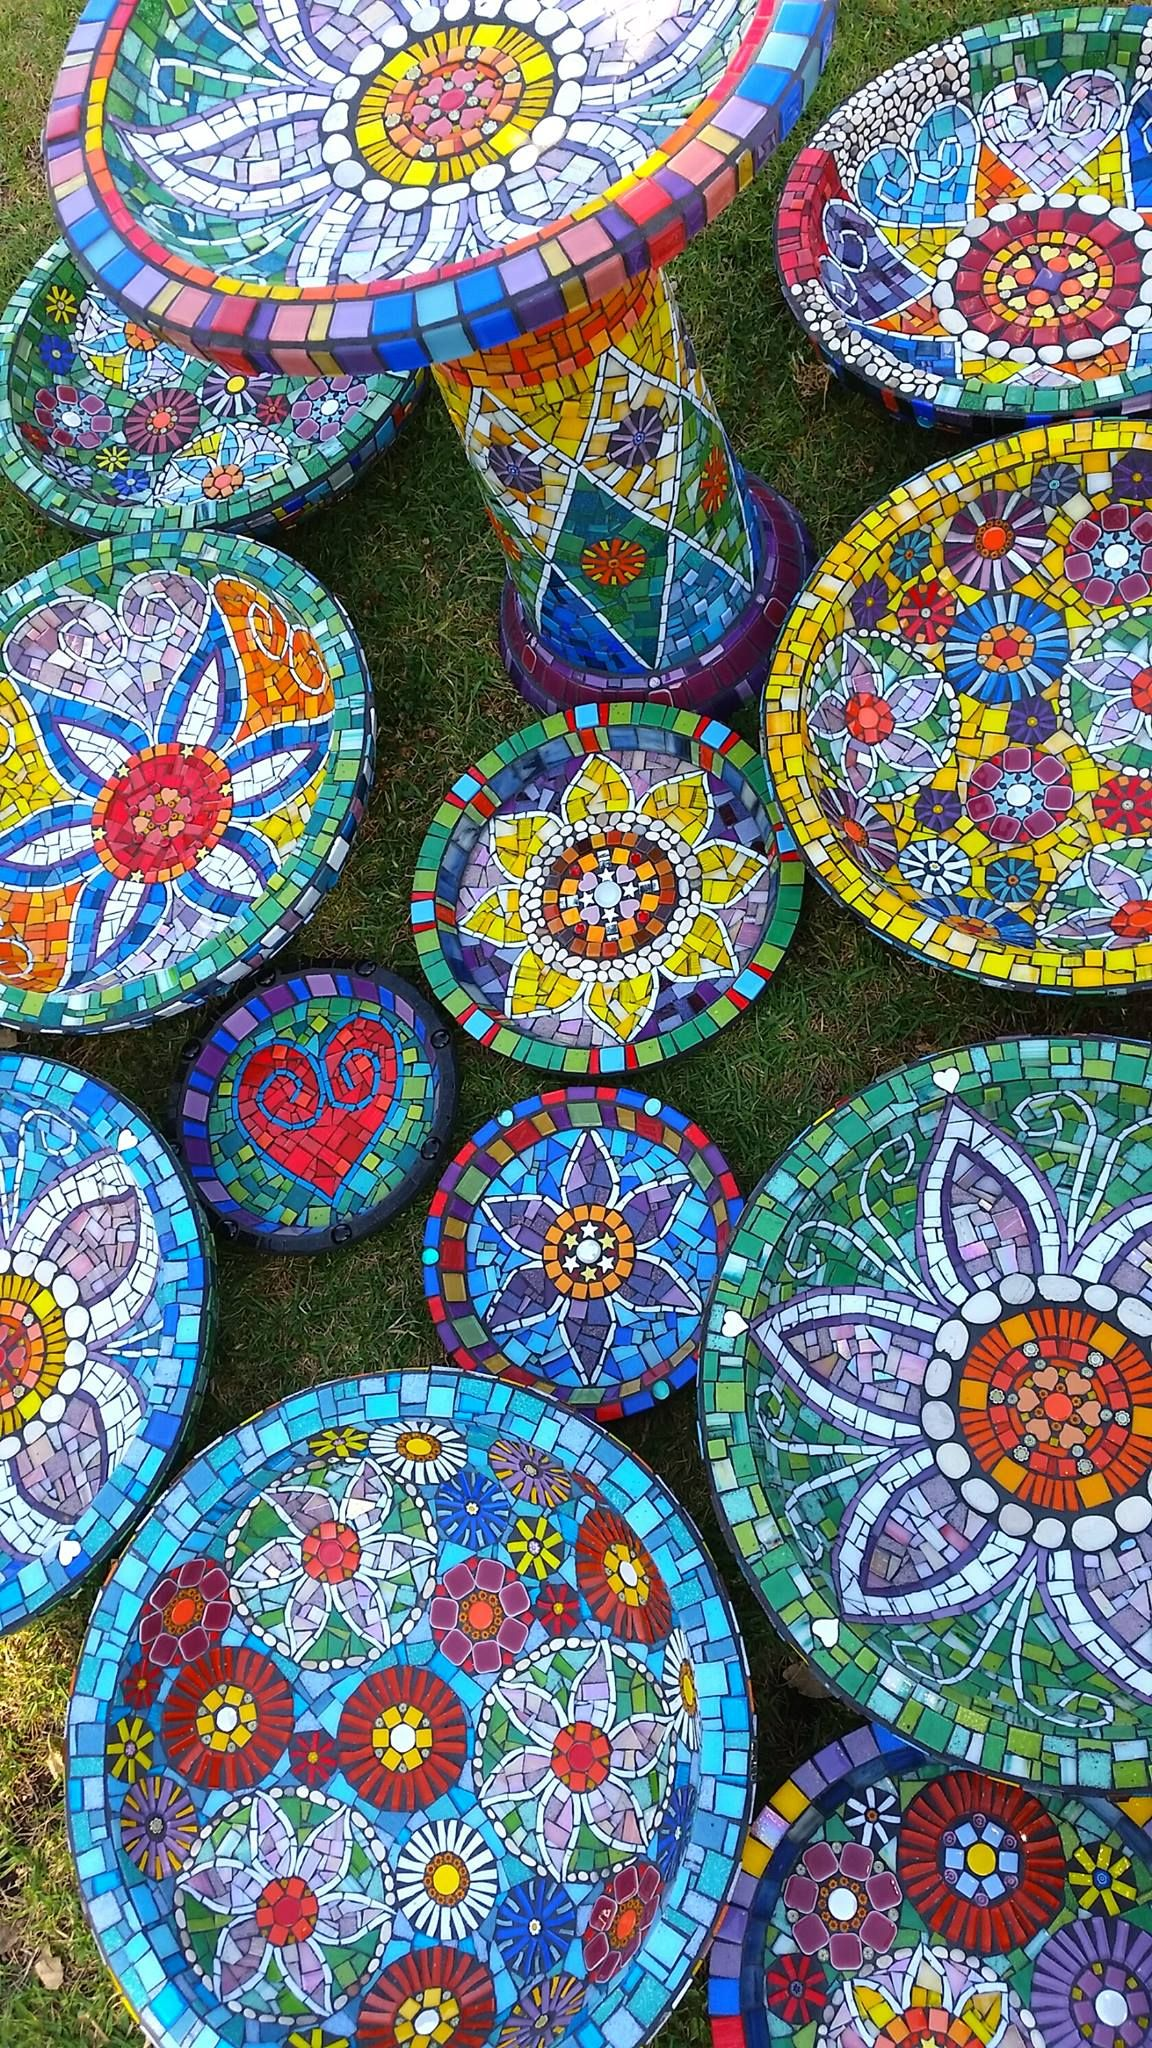 Variety Of Mosaic Bowls And Platters With Images Mosaic Garden